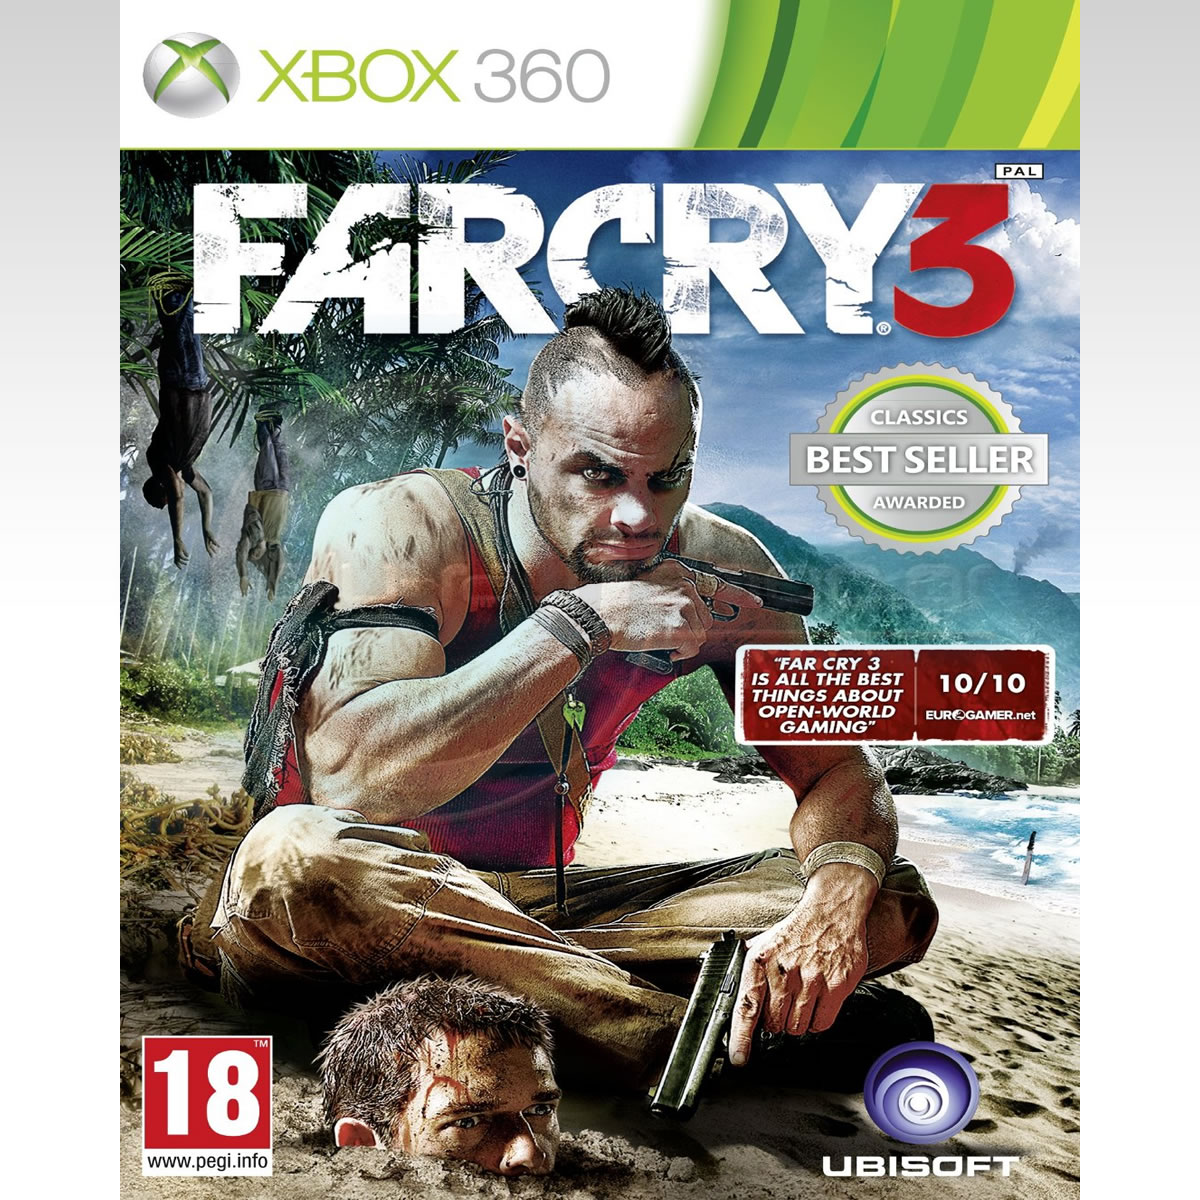 FAR CRY 3 - CLASSICS (XBOX 360)